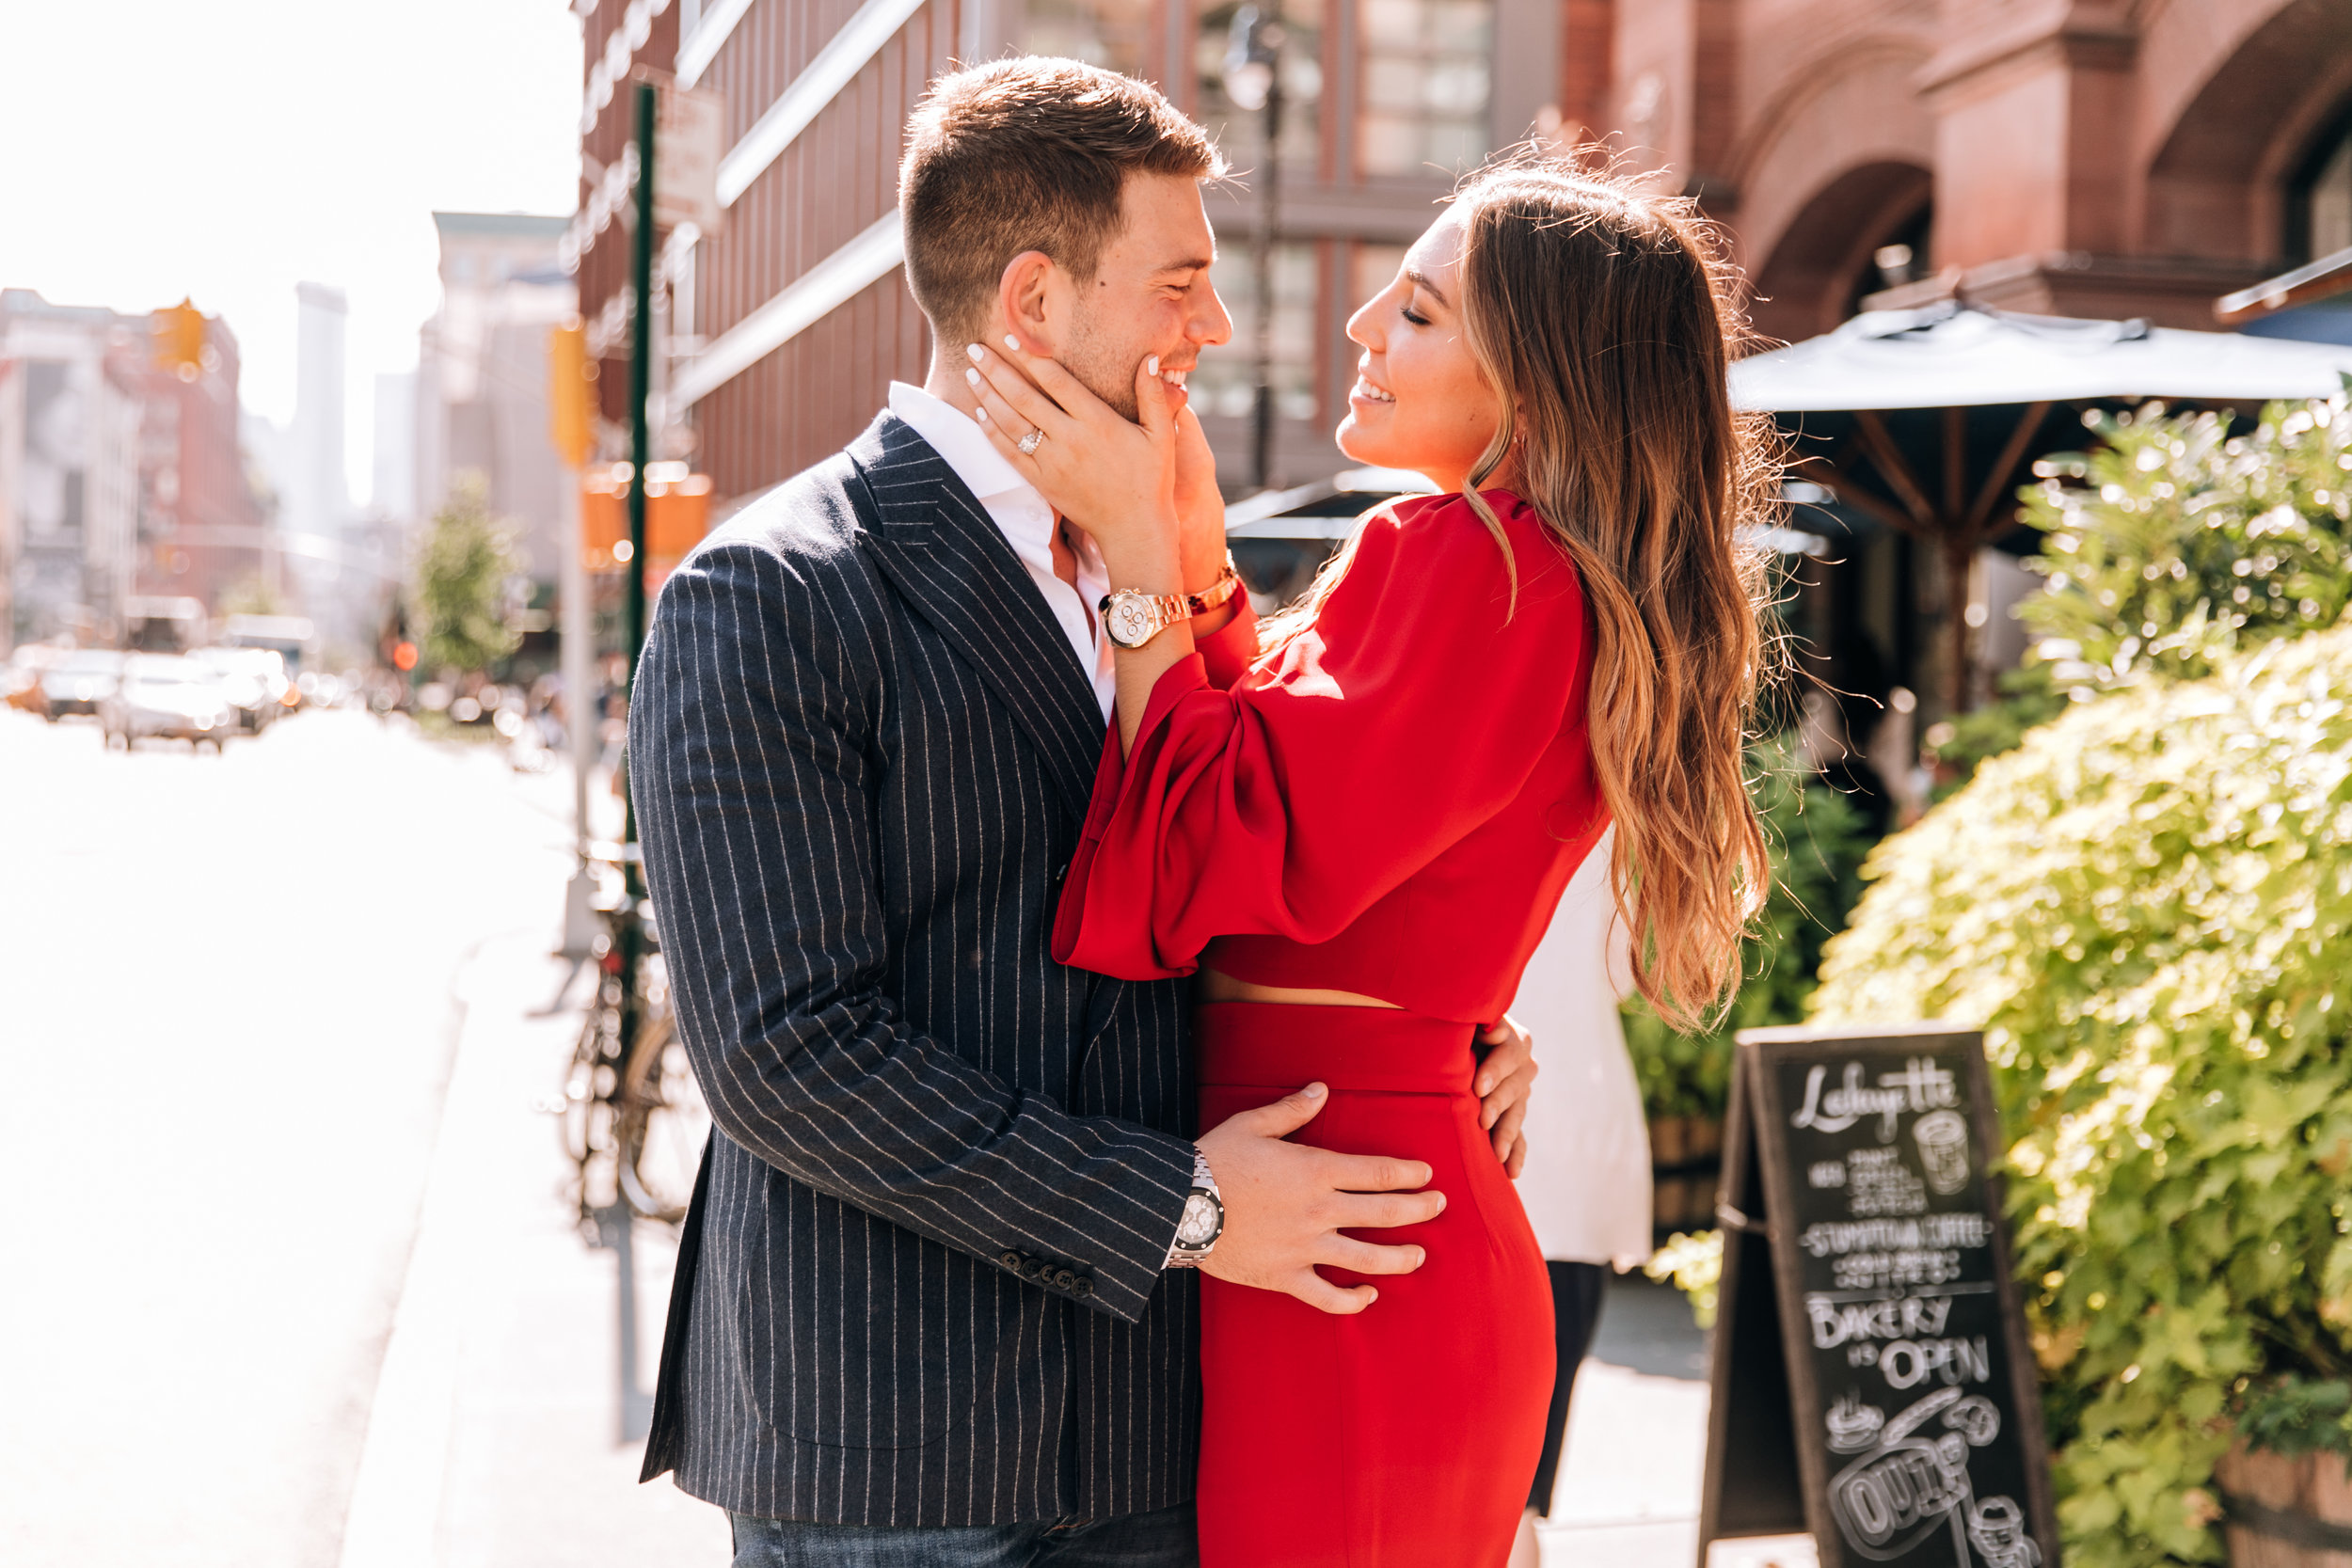 NY engagement photographer, New York engagement photographer, New York City engagement photographer, Brooklyn engagement photographer, BK engagement photographer, soho engagement photographer